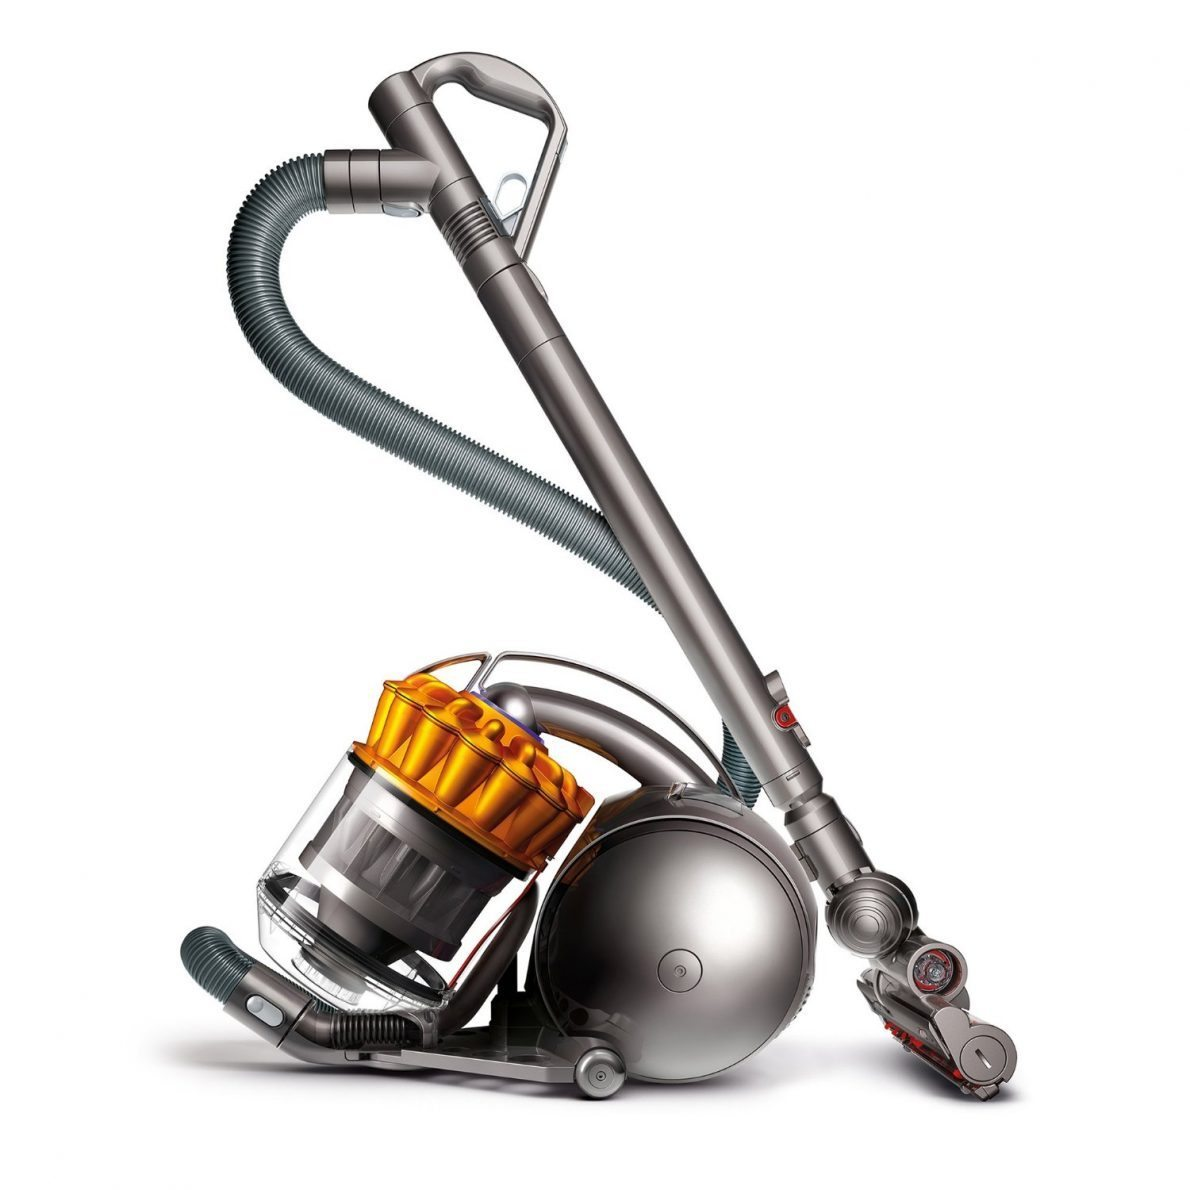 Dyson Ball MultiFloor Canister Vacuum Cleaner Review